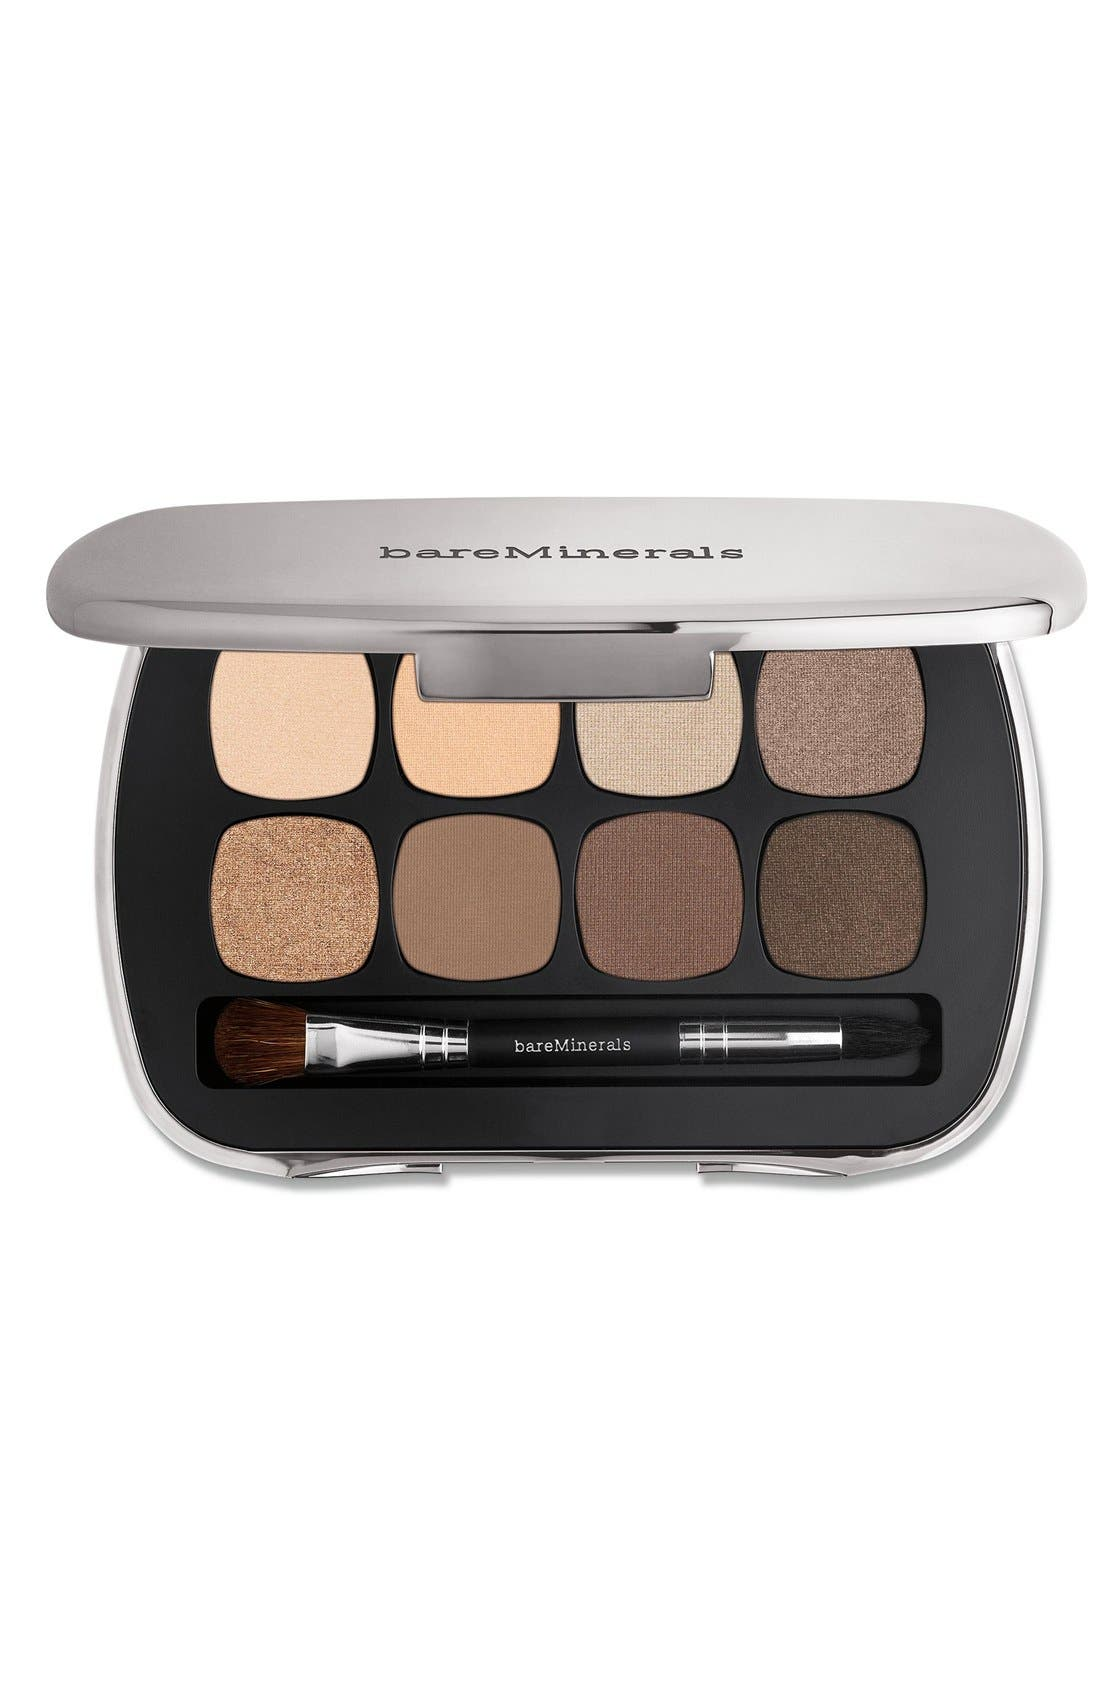 READY 8.0 The Bare Neutrals Eyeshadow Palette,                             Main thumbnail 1, color,                             NO COLOR